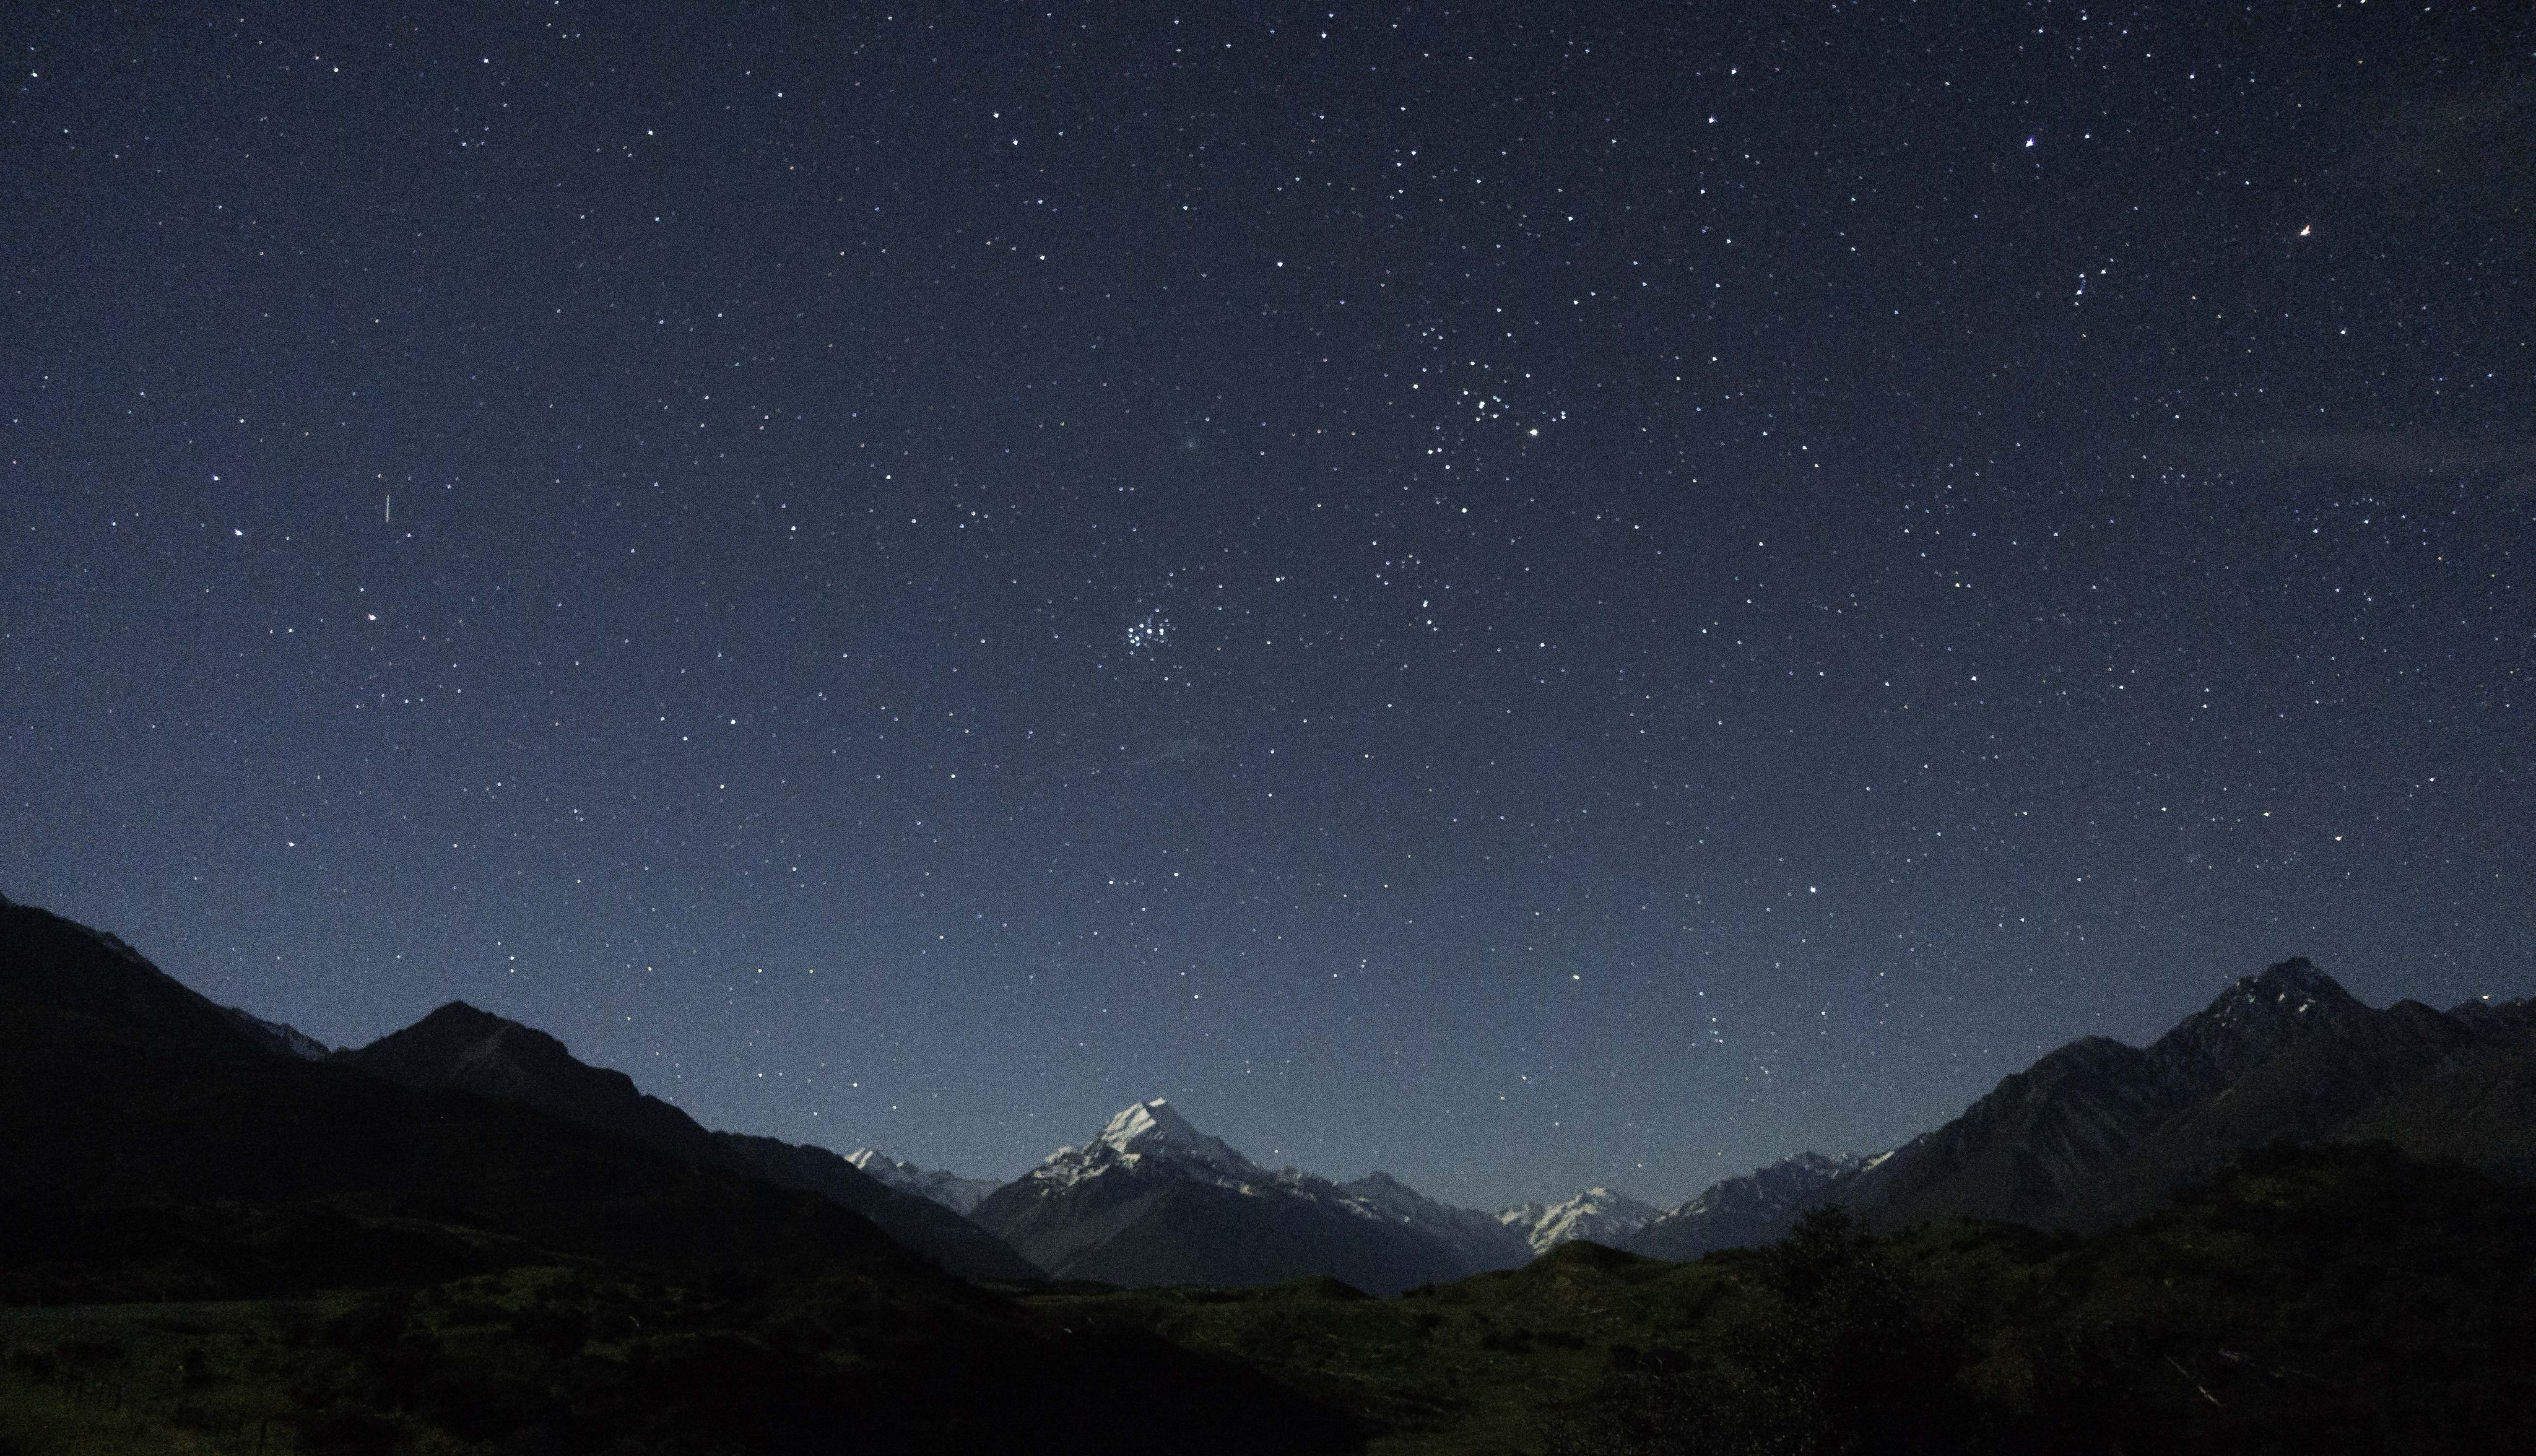 sp - Ian Griffin #matariki over Aoraki. The moon illuminated the scene